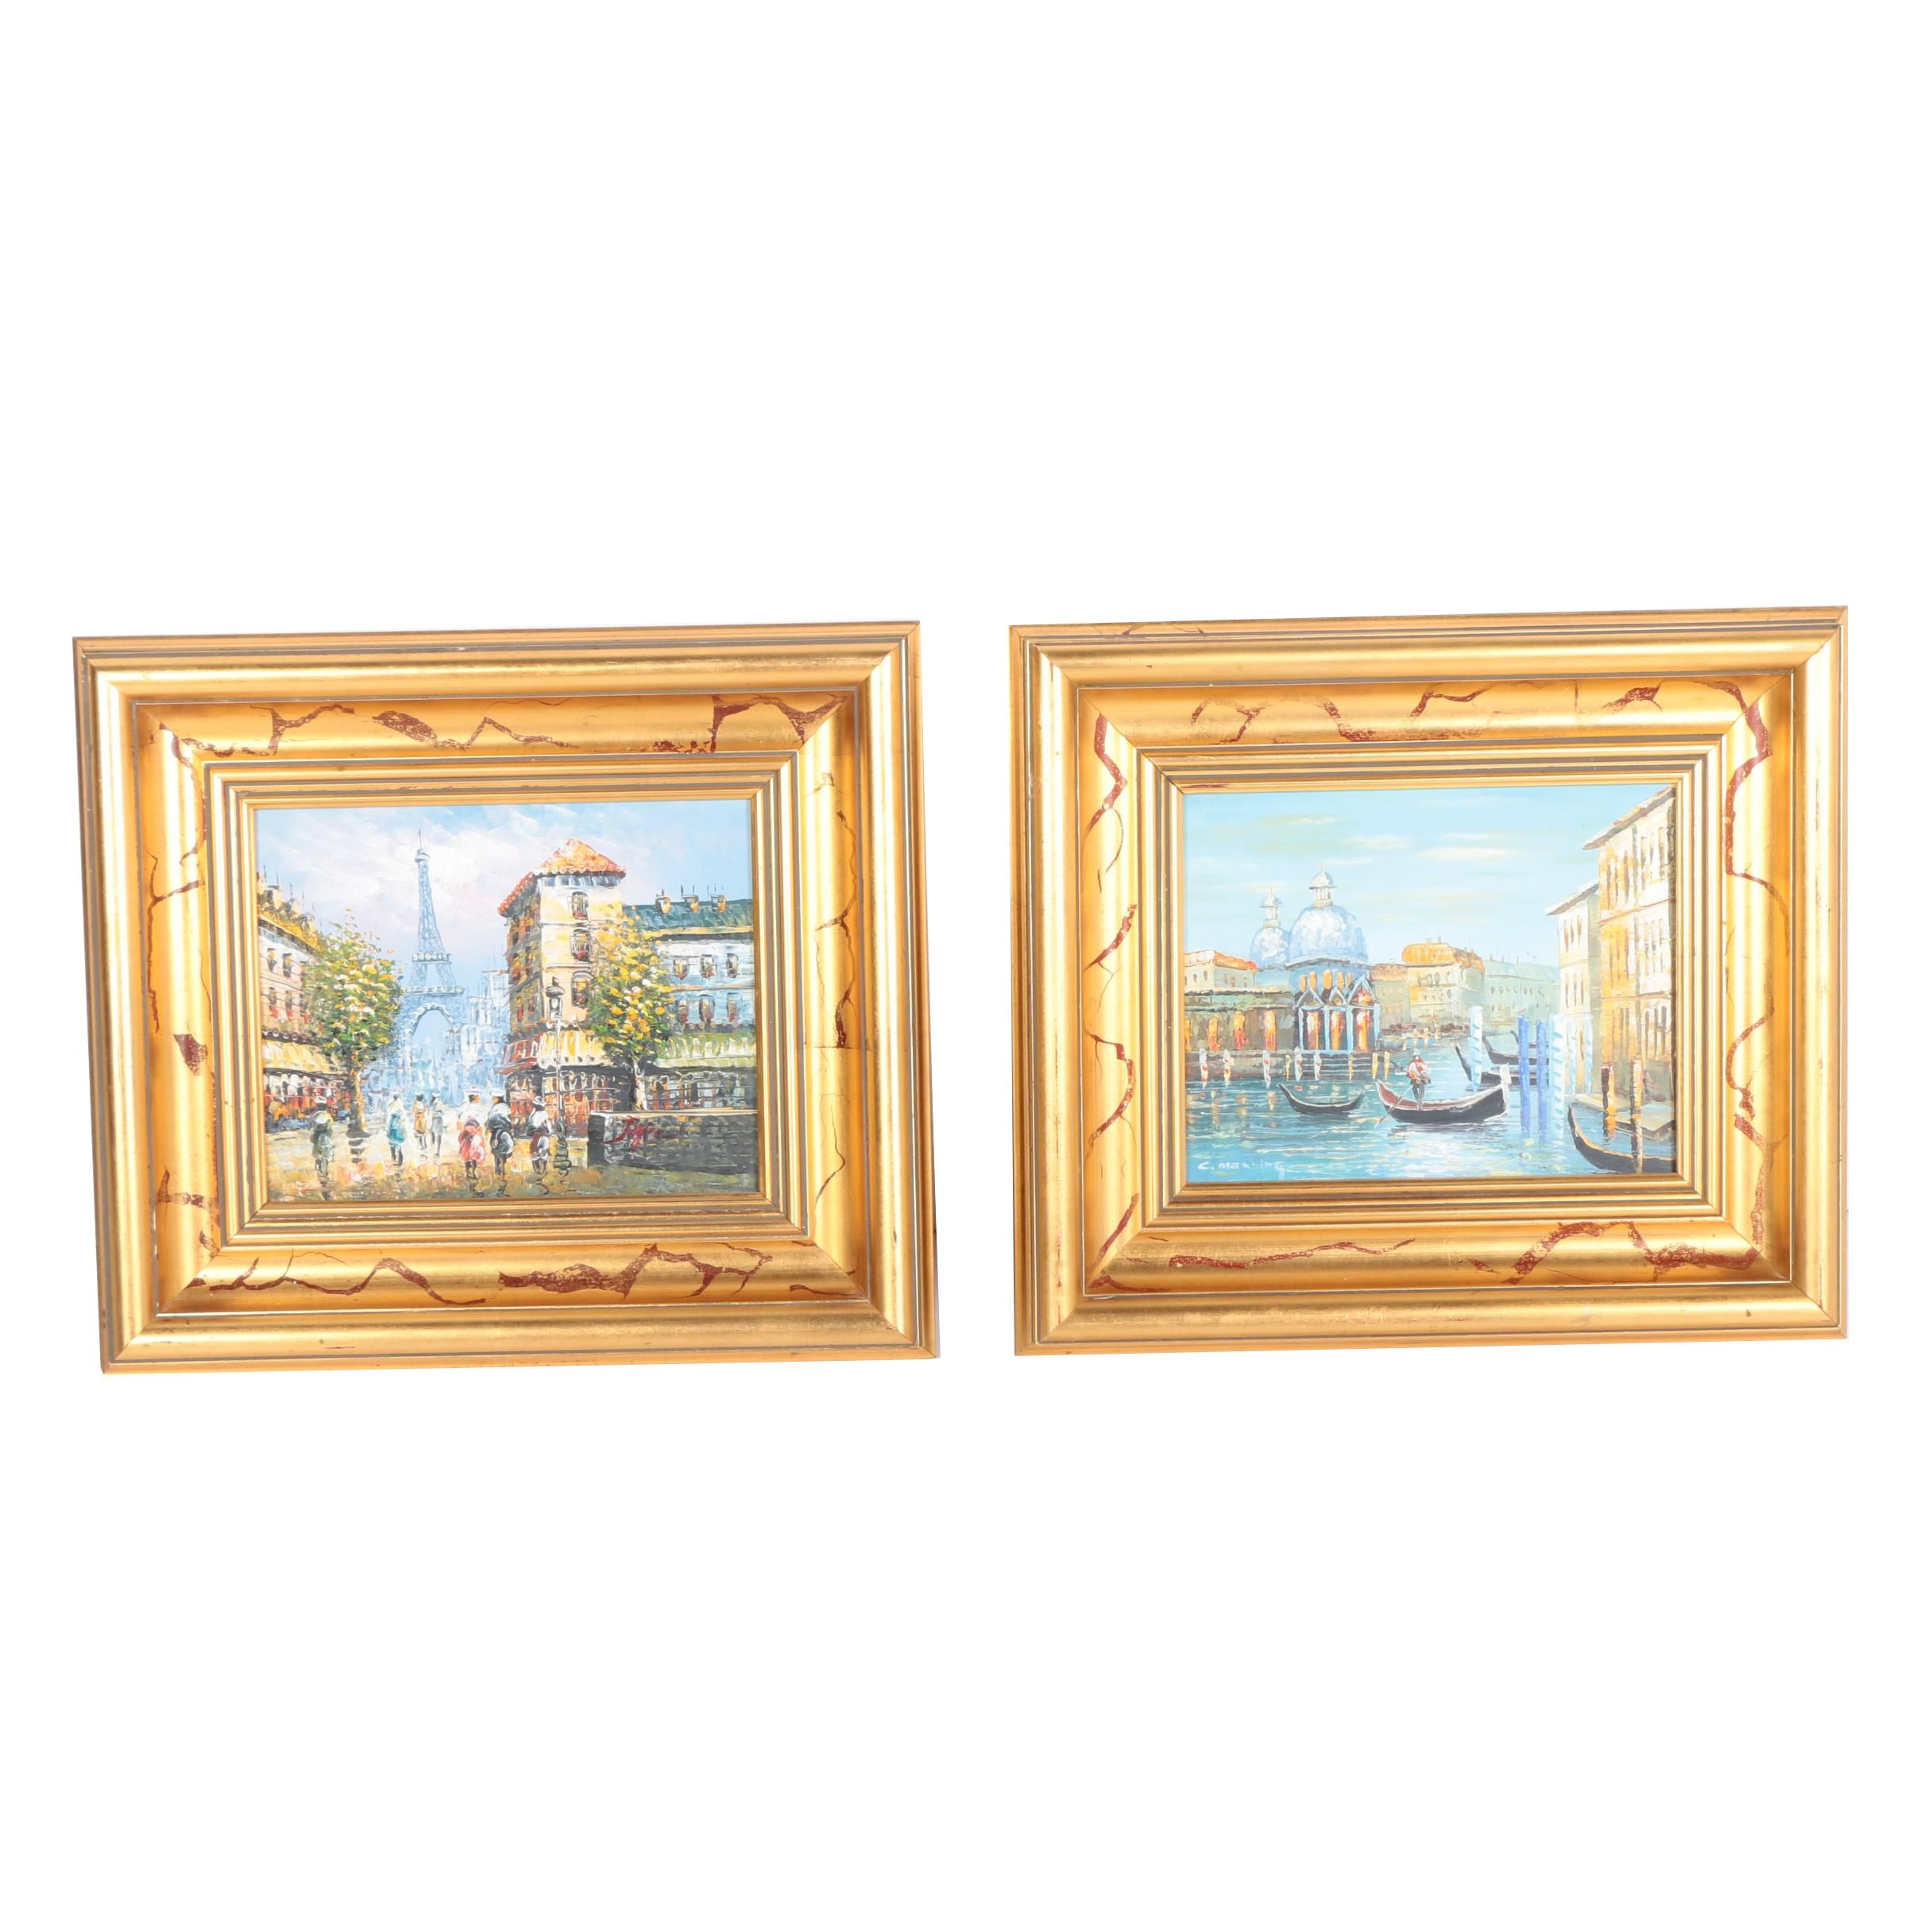 Two Signed Oil Paintings on Canvas of Venice and Paris